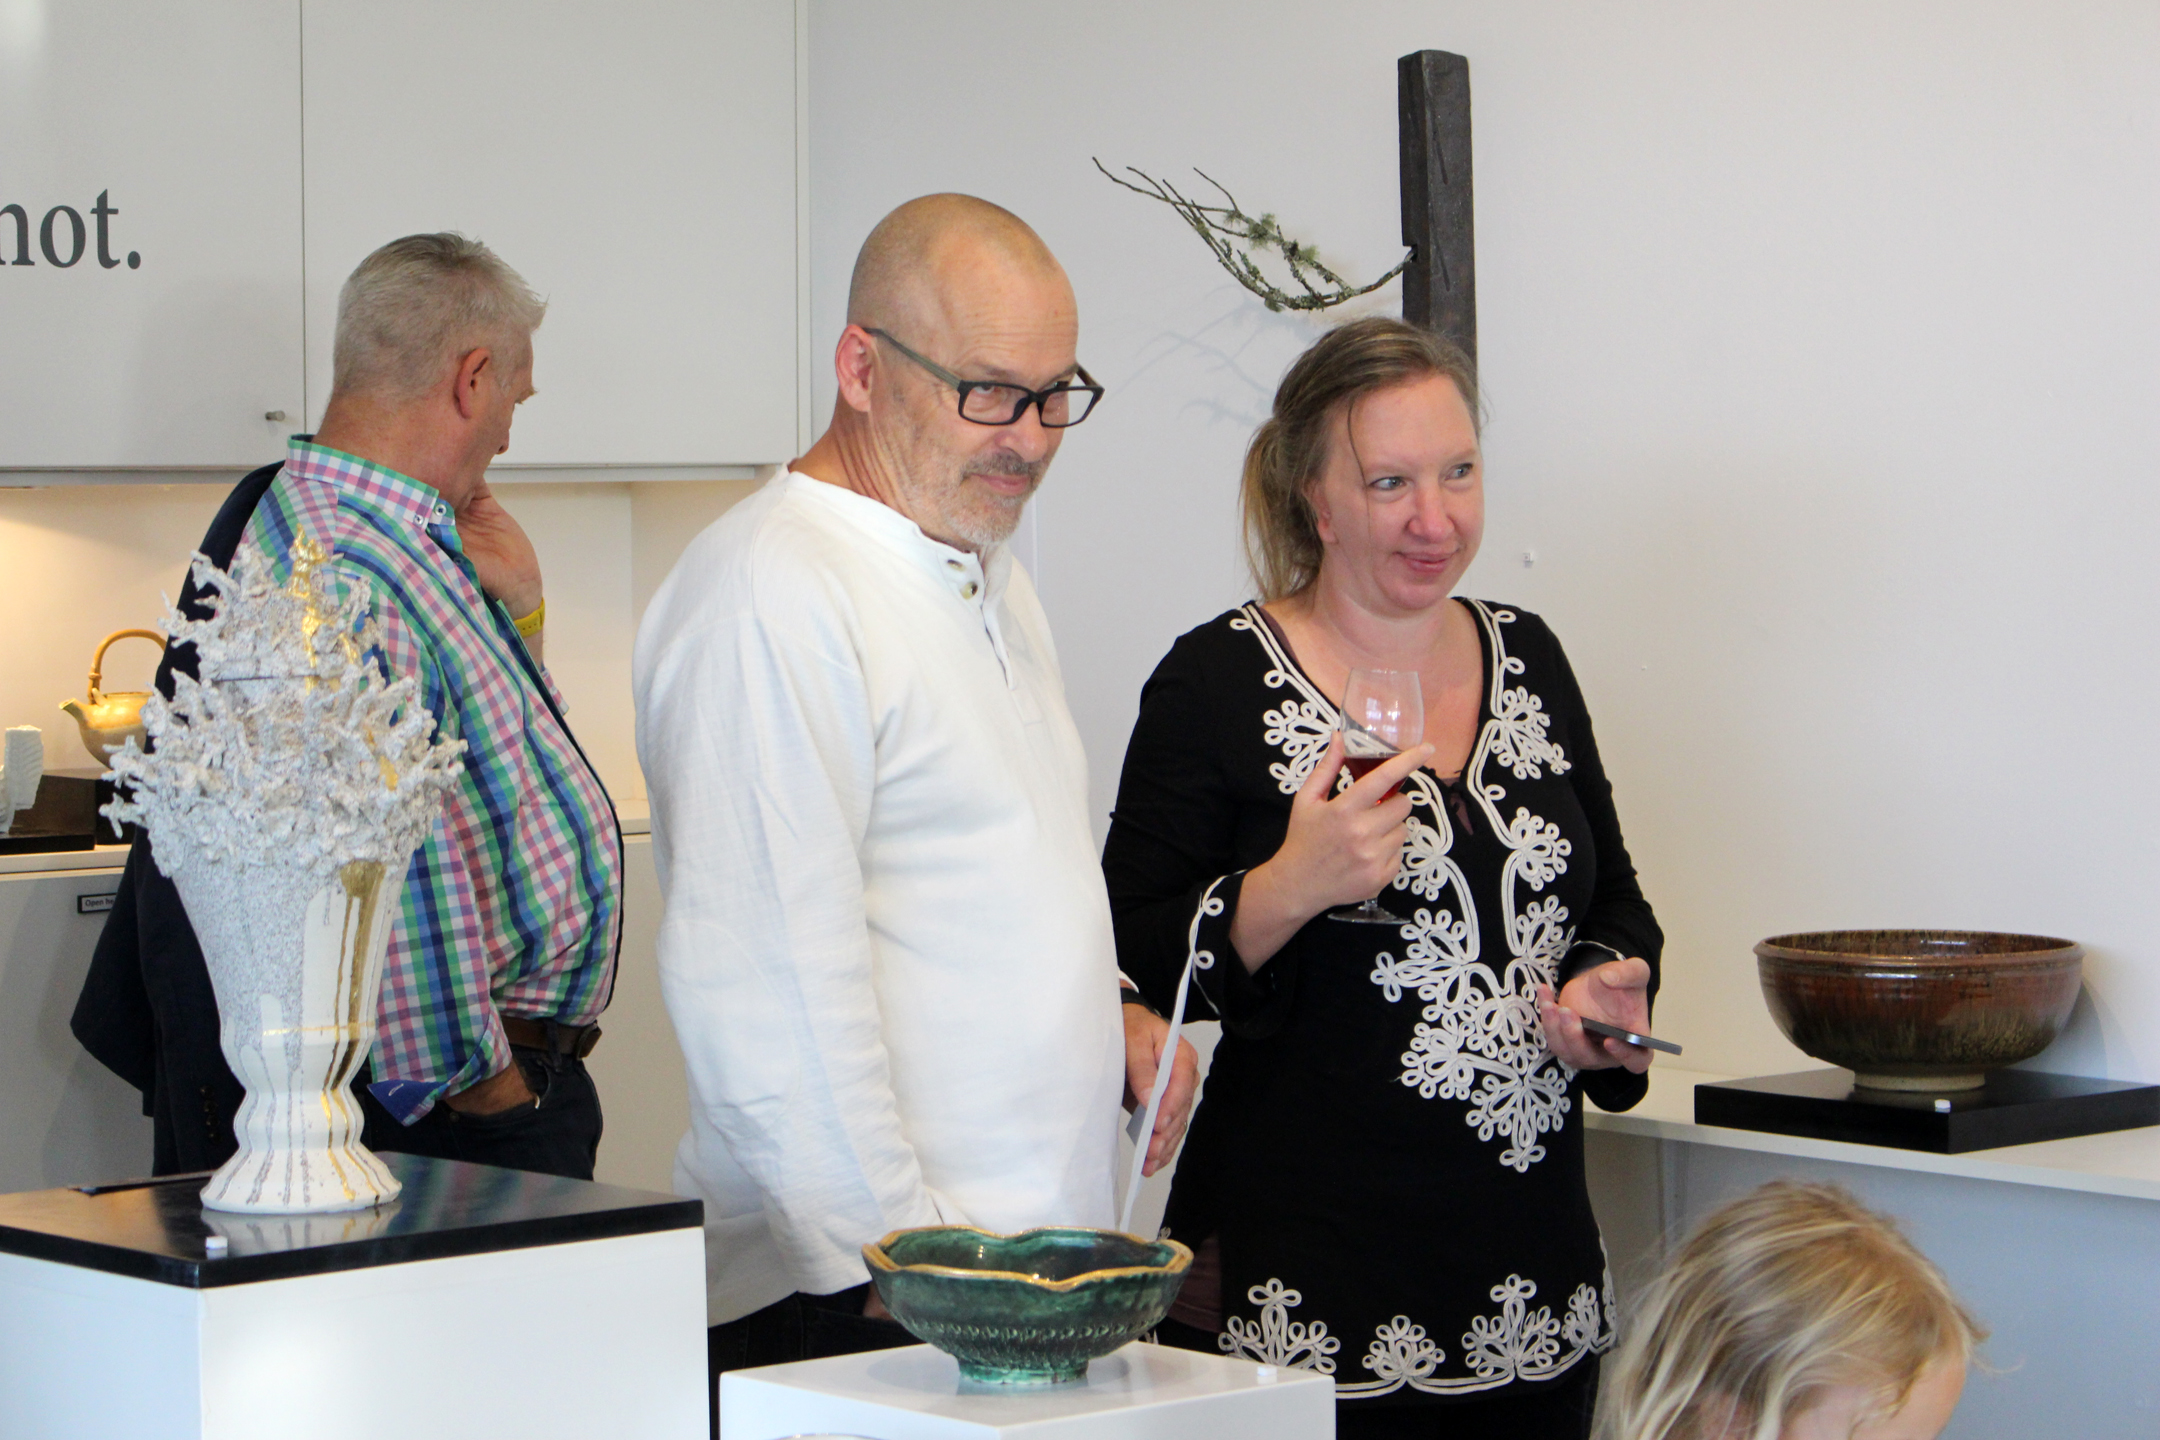 Ceramic artists Michael and Amy Michaels.